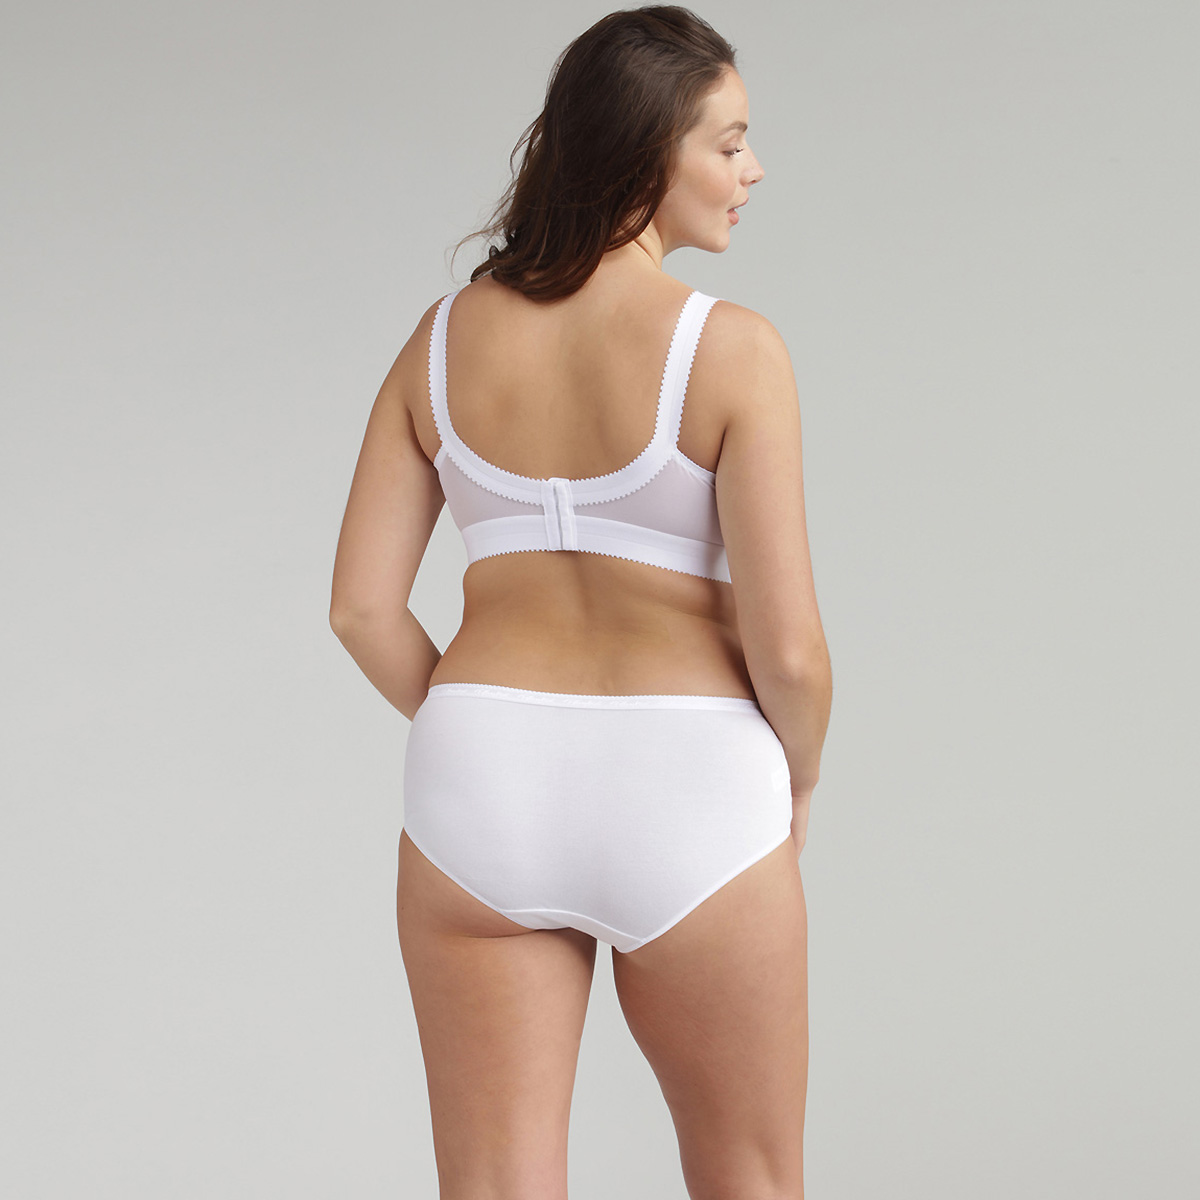 Non-wired Bra in White – Cross Your Heart 556, , PLAYTEX